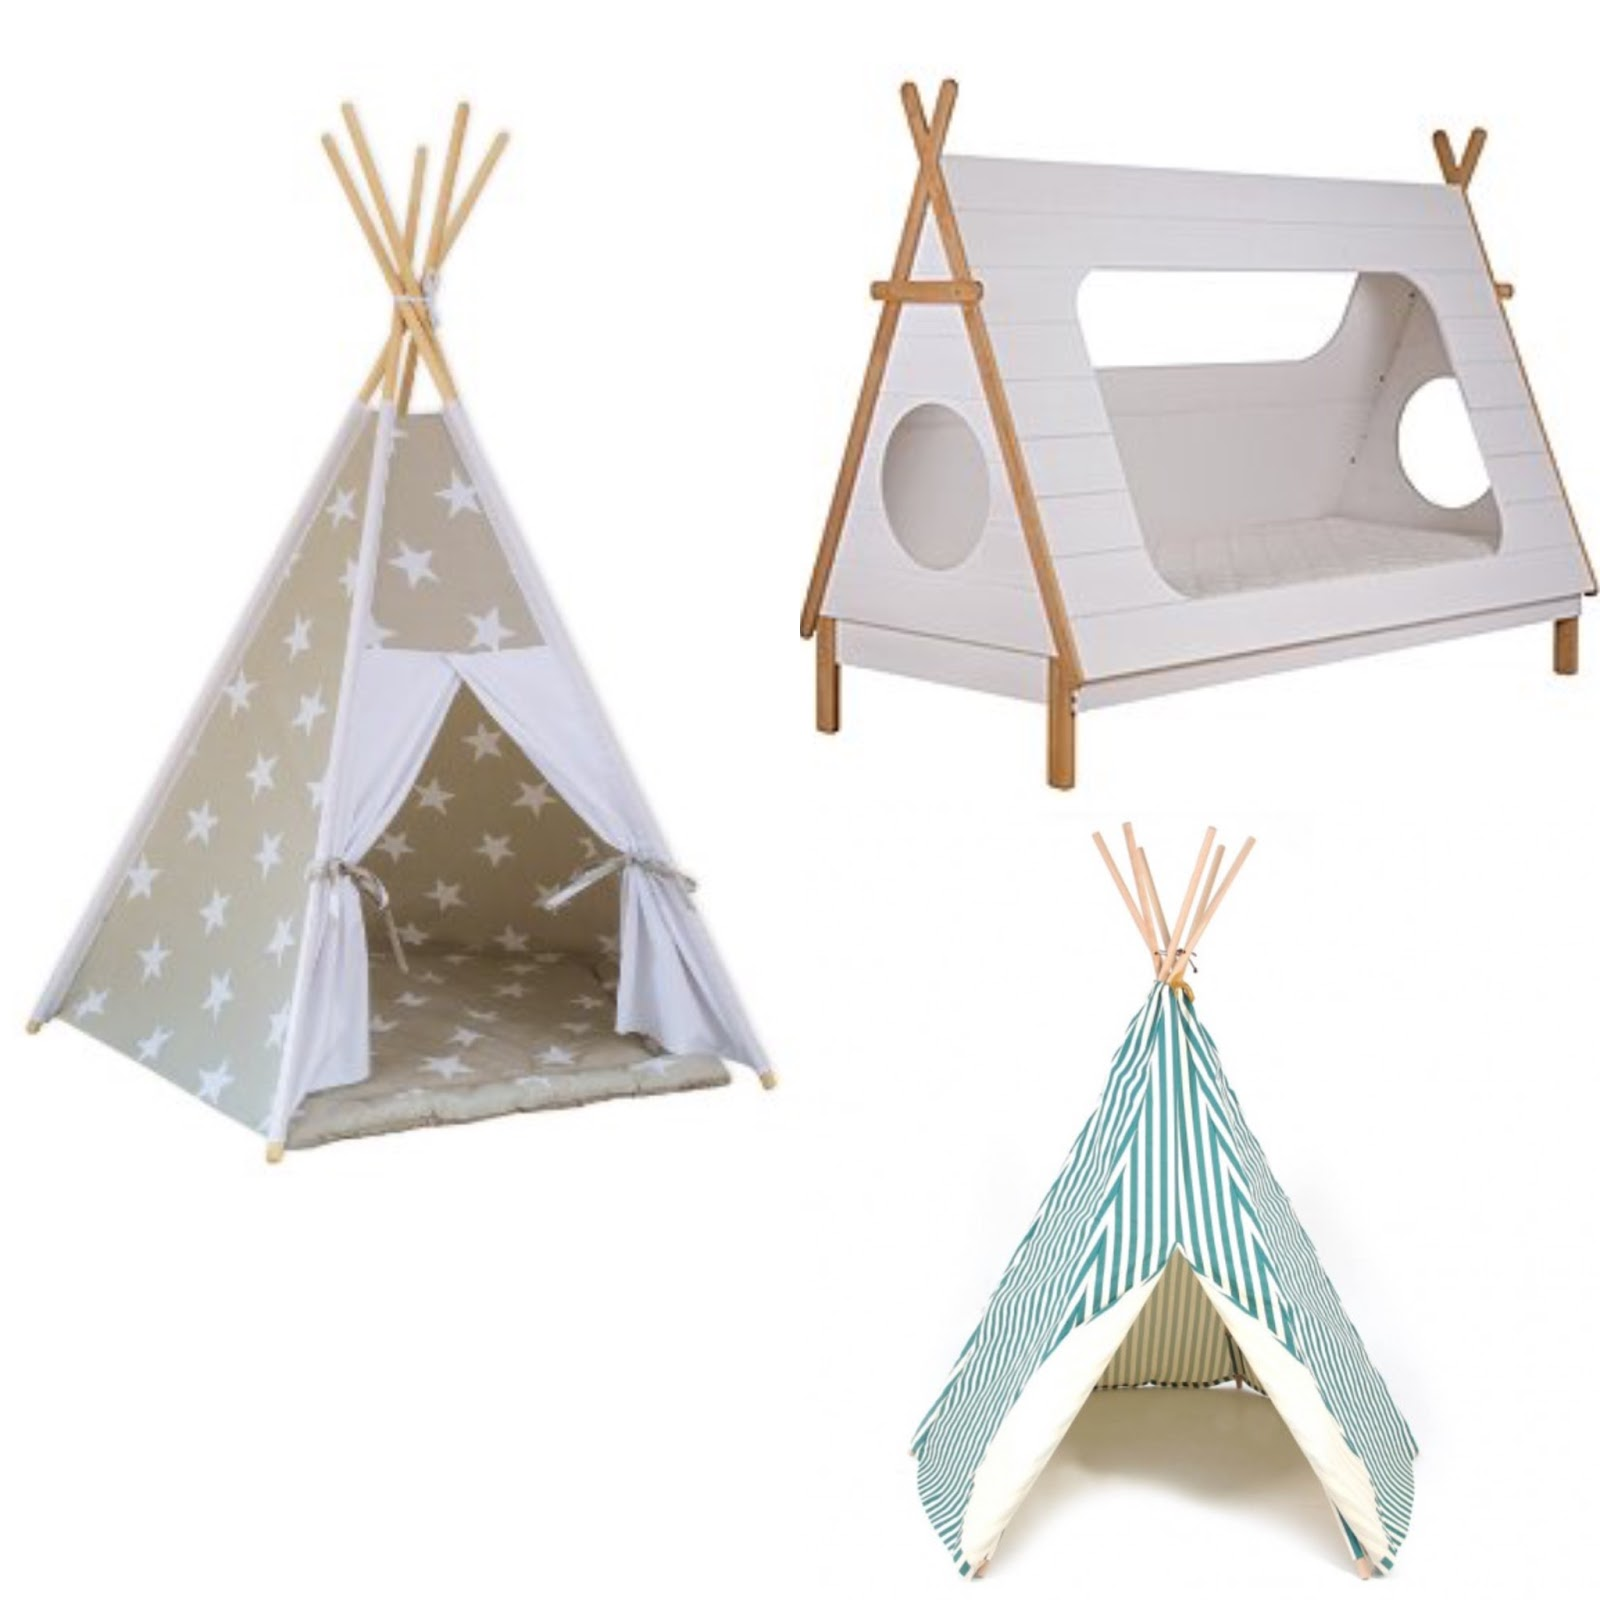 tipi zelt kinderzimmer | bnbnews.co, Schlafzimmer design